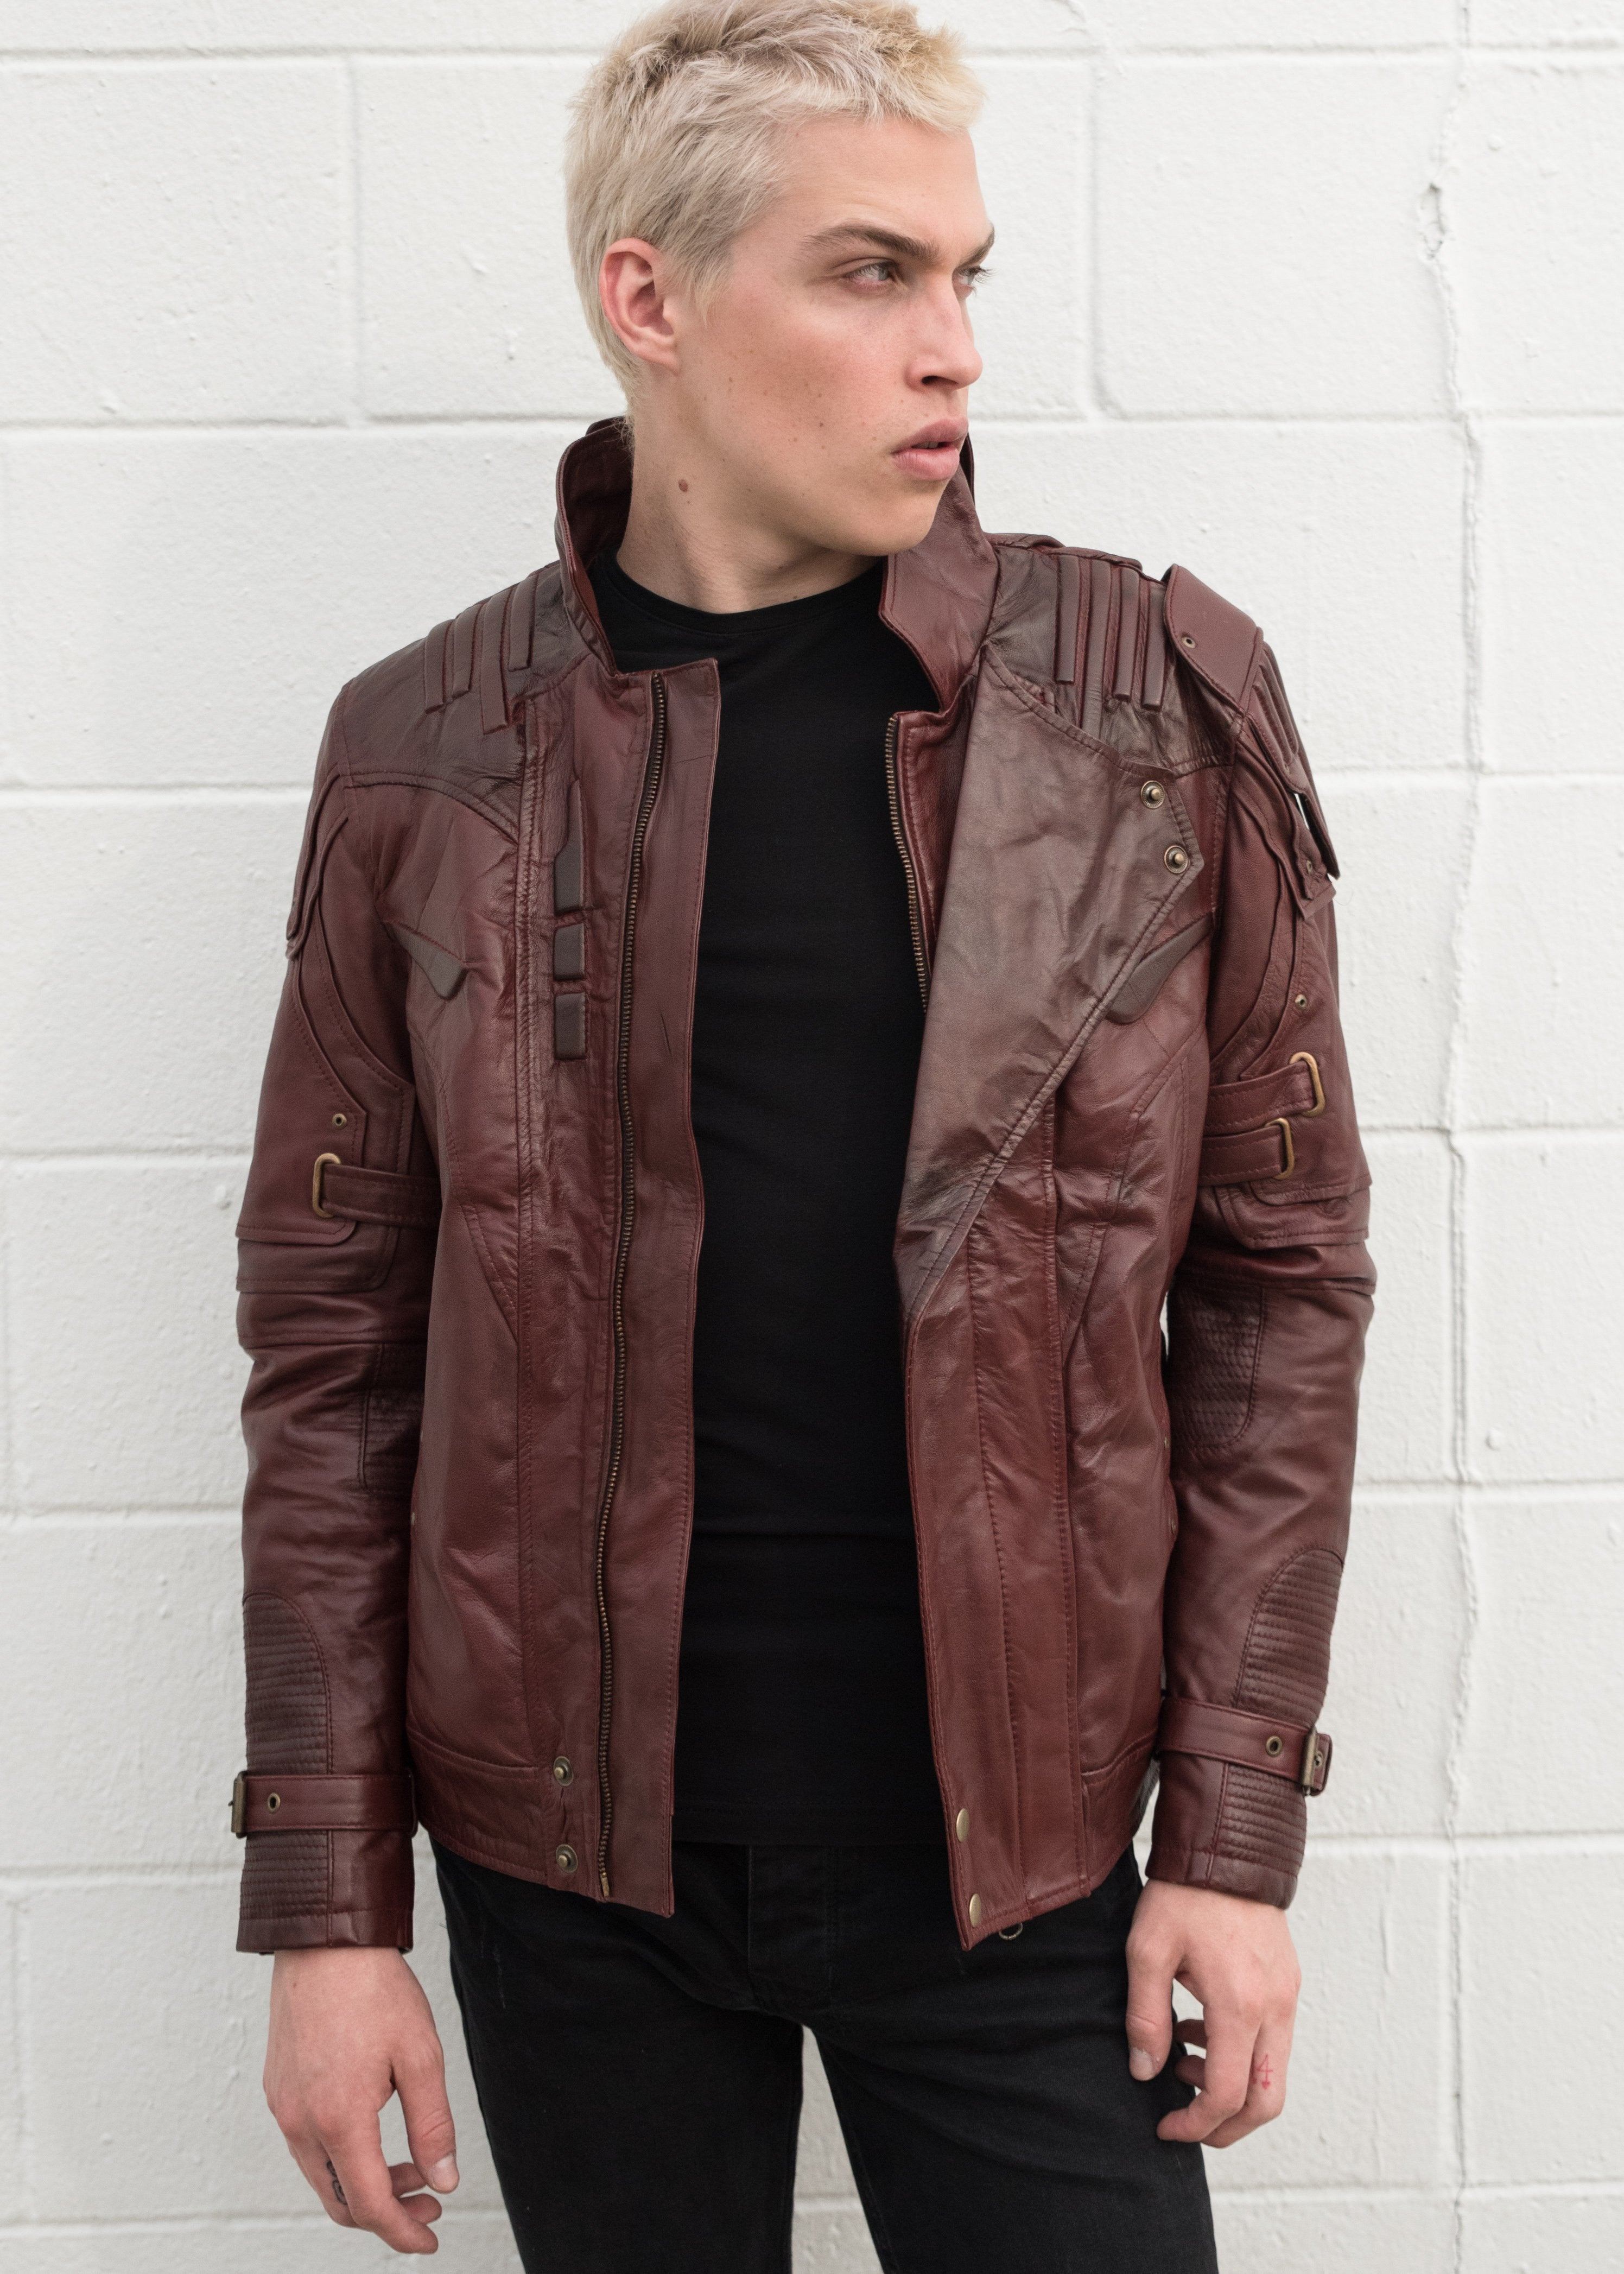 Men's Star Lord Guardians of The Galaxy Red Leather Jacket